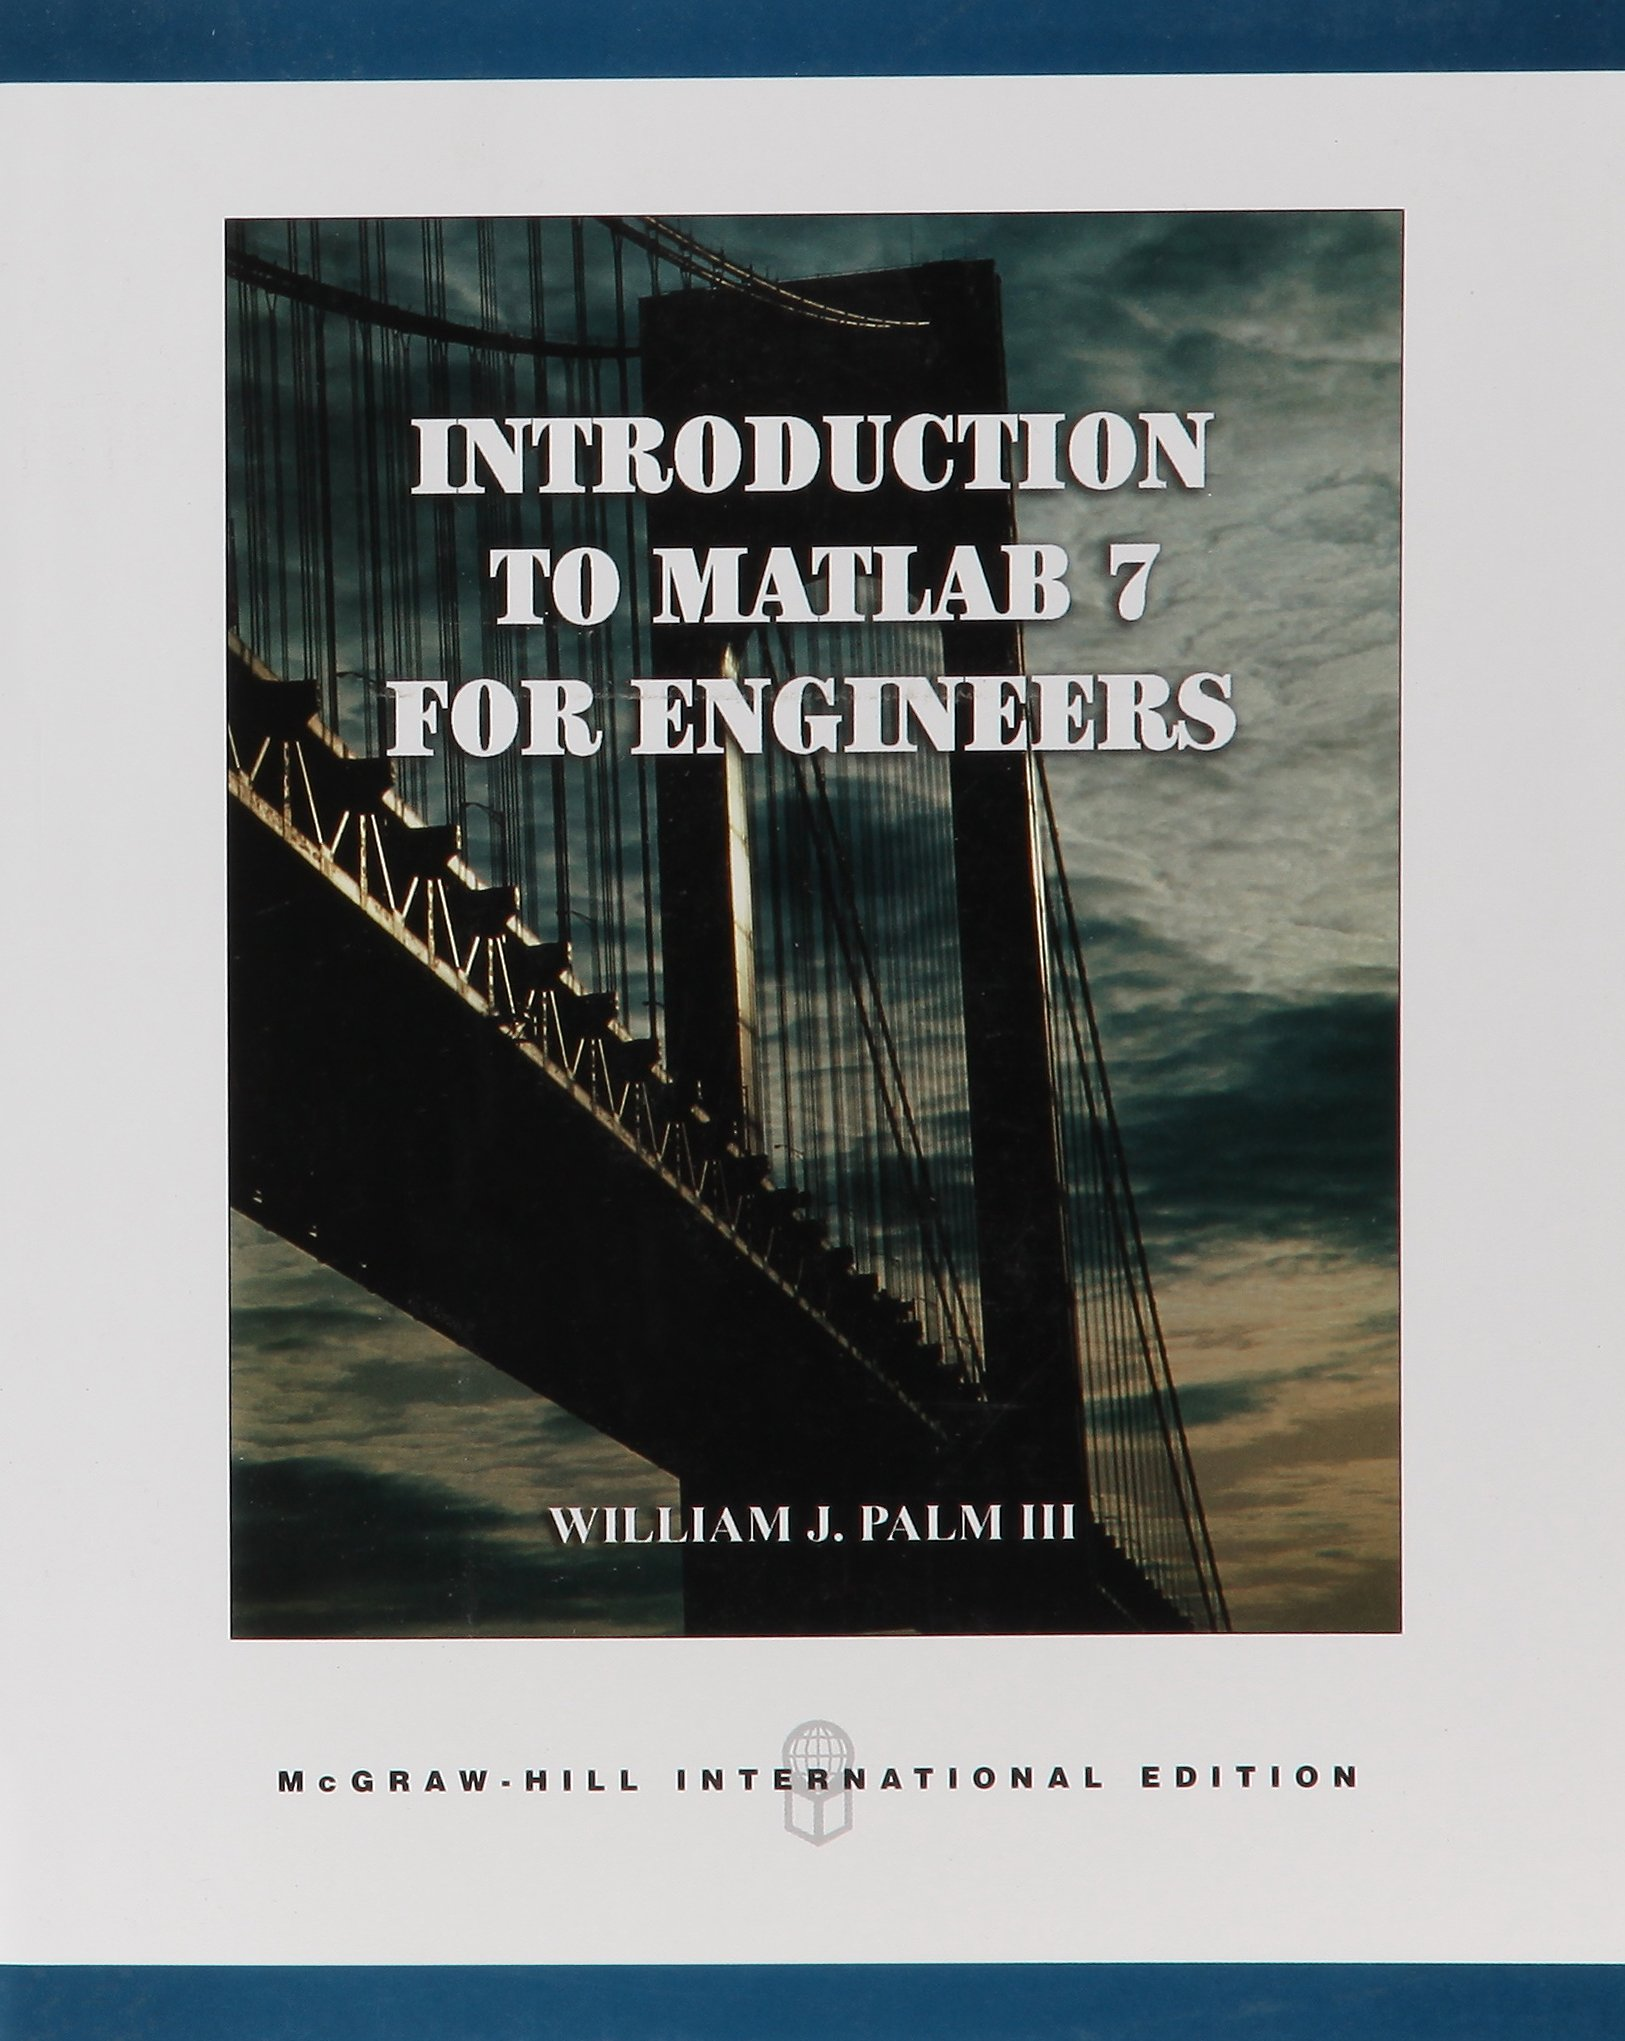 Introduction to Matlab 7 for Engineers: Amazon.co.uk: William J Palm Iii:  9780071232623: Books